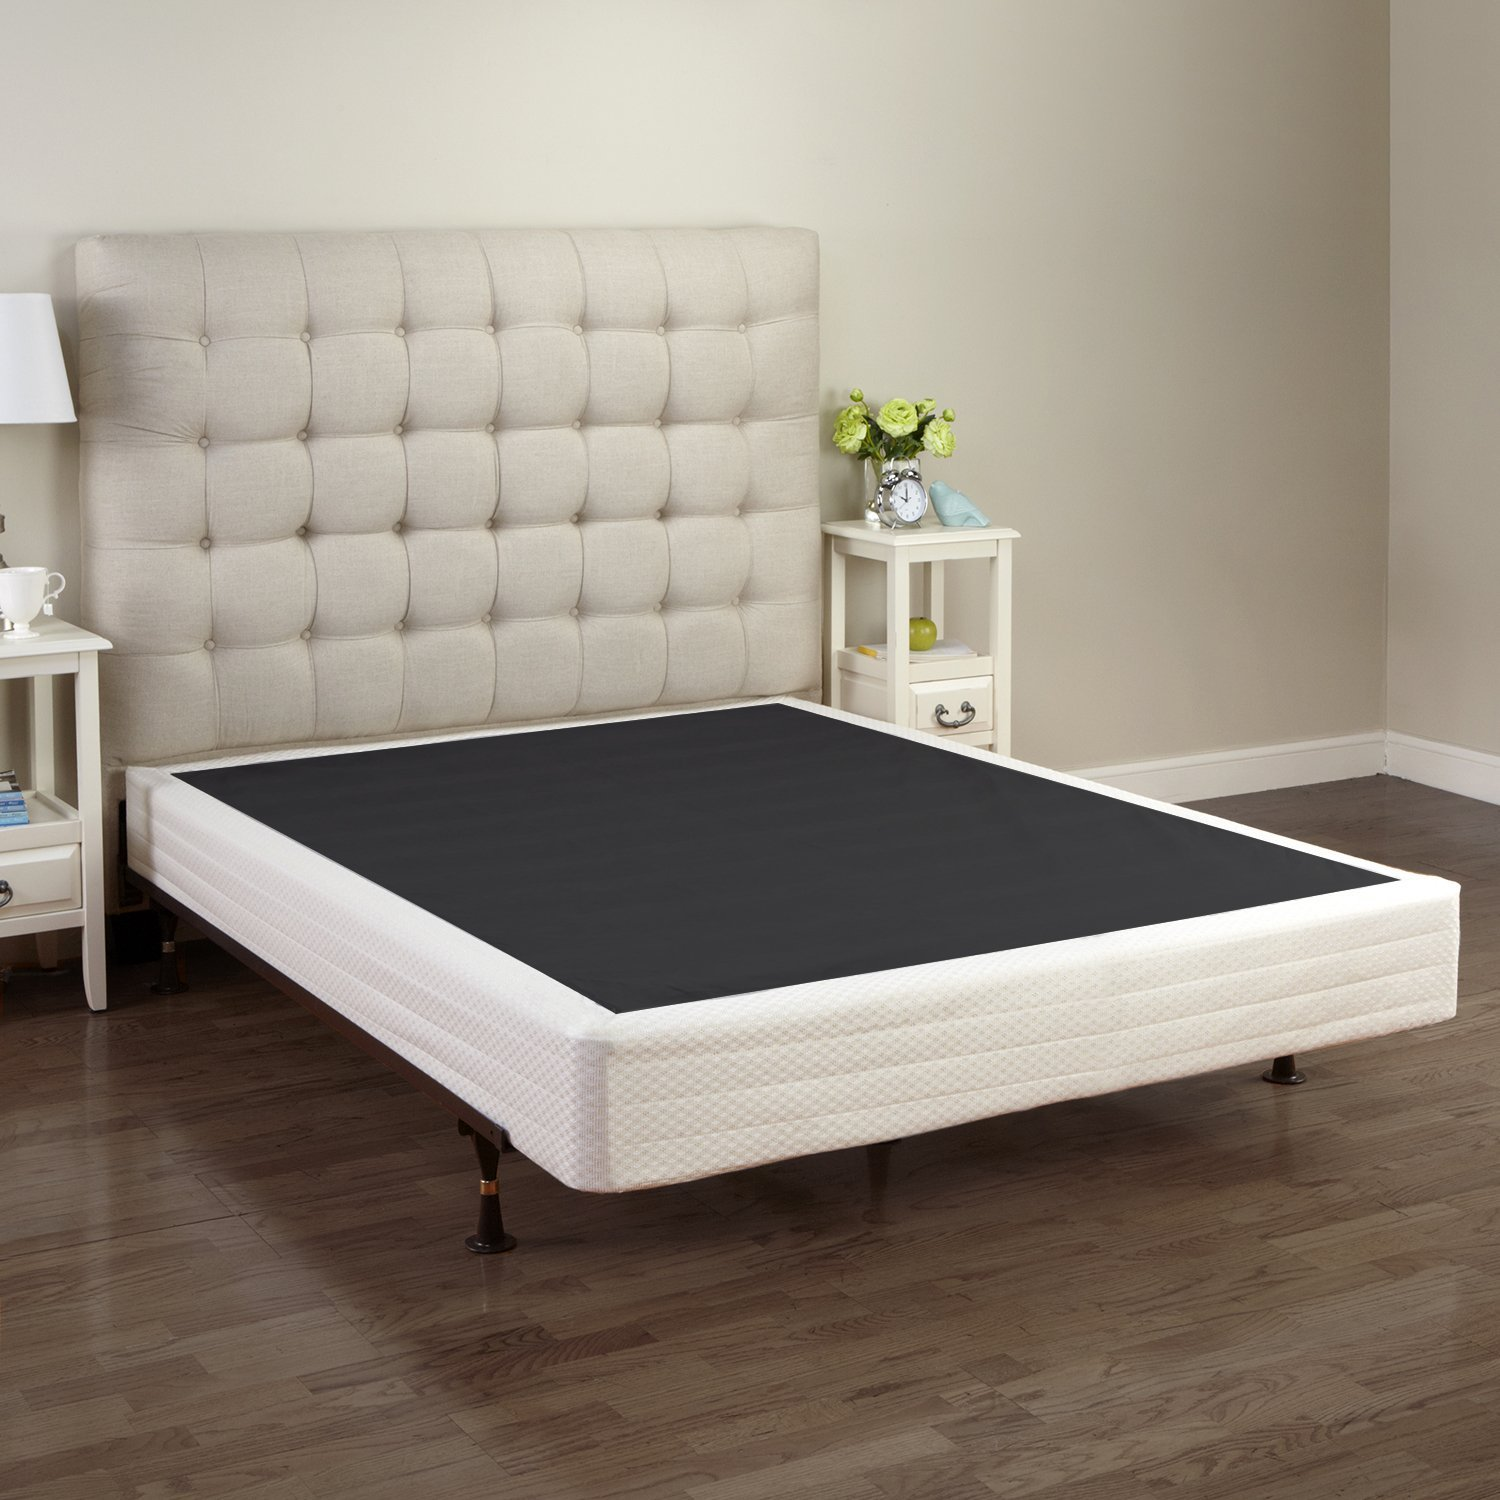 Top 10 Best Mattress Foundations Review Top Best Pro Reviews